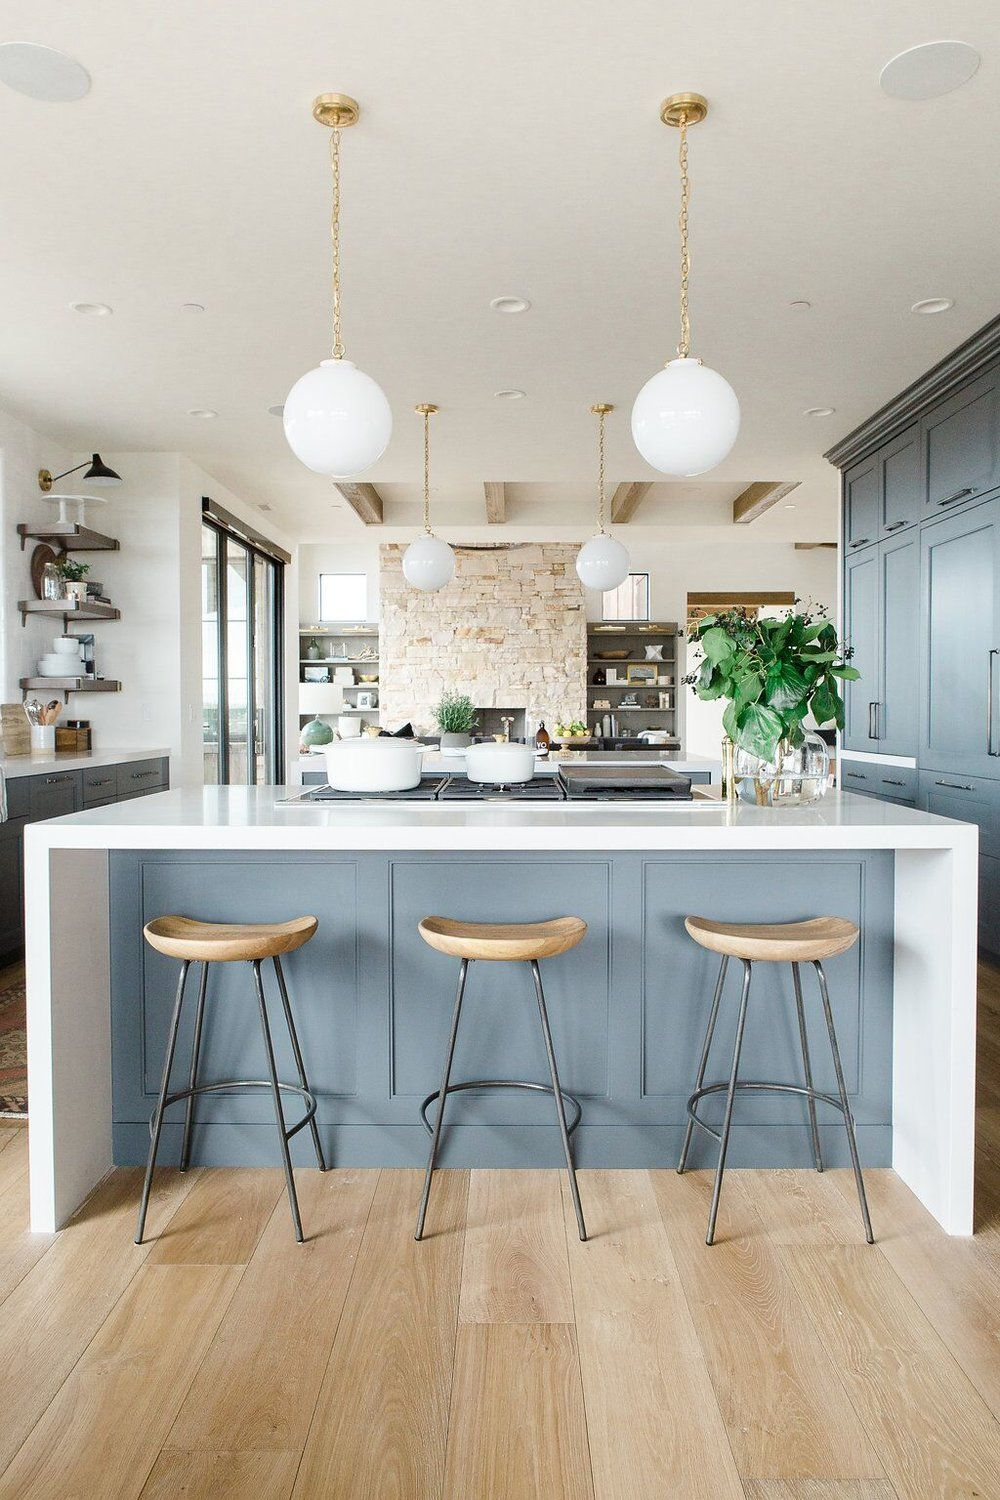 Promontory Project: Great Room, Kitchen | Pinterest | Open shelves ...